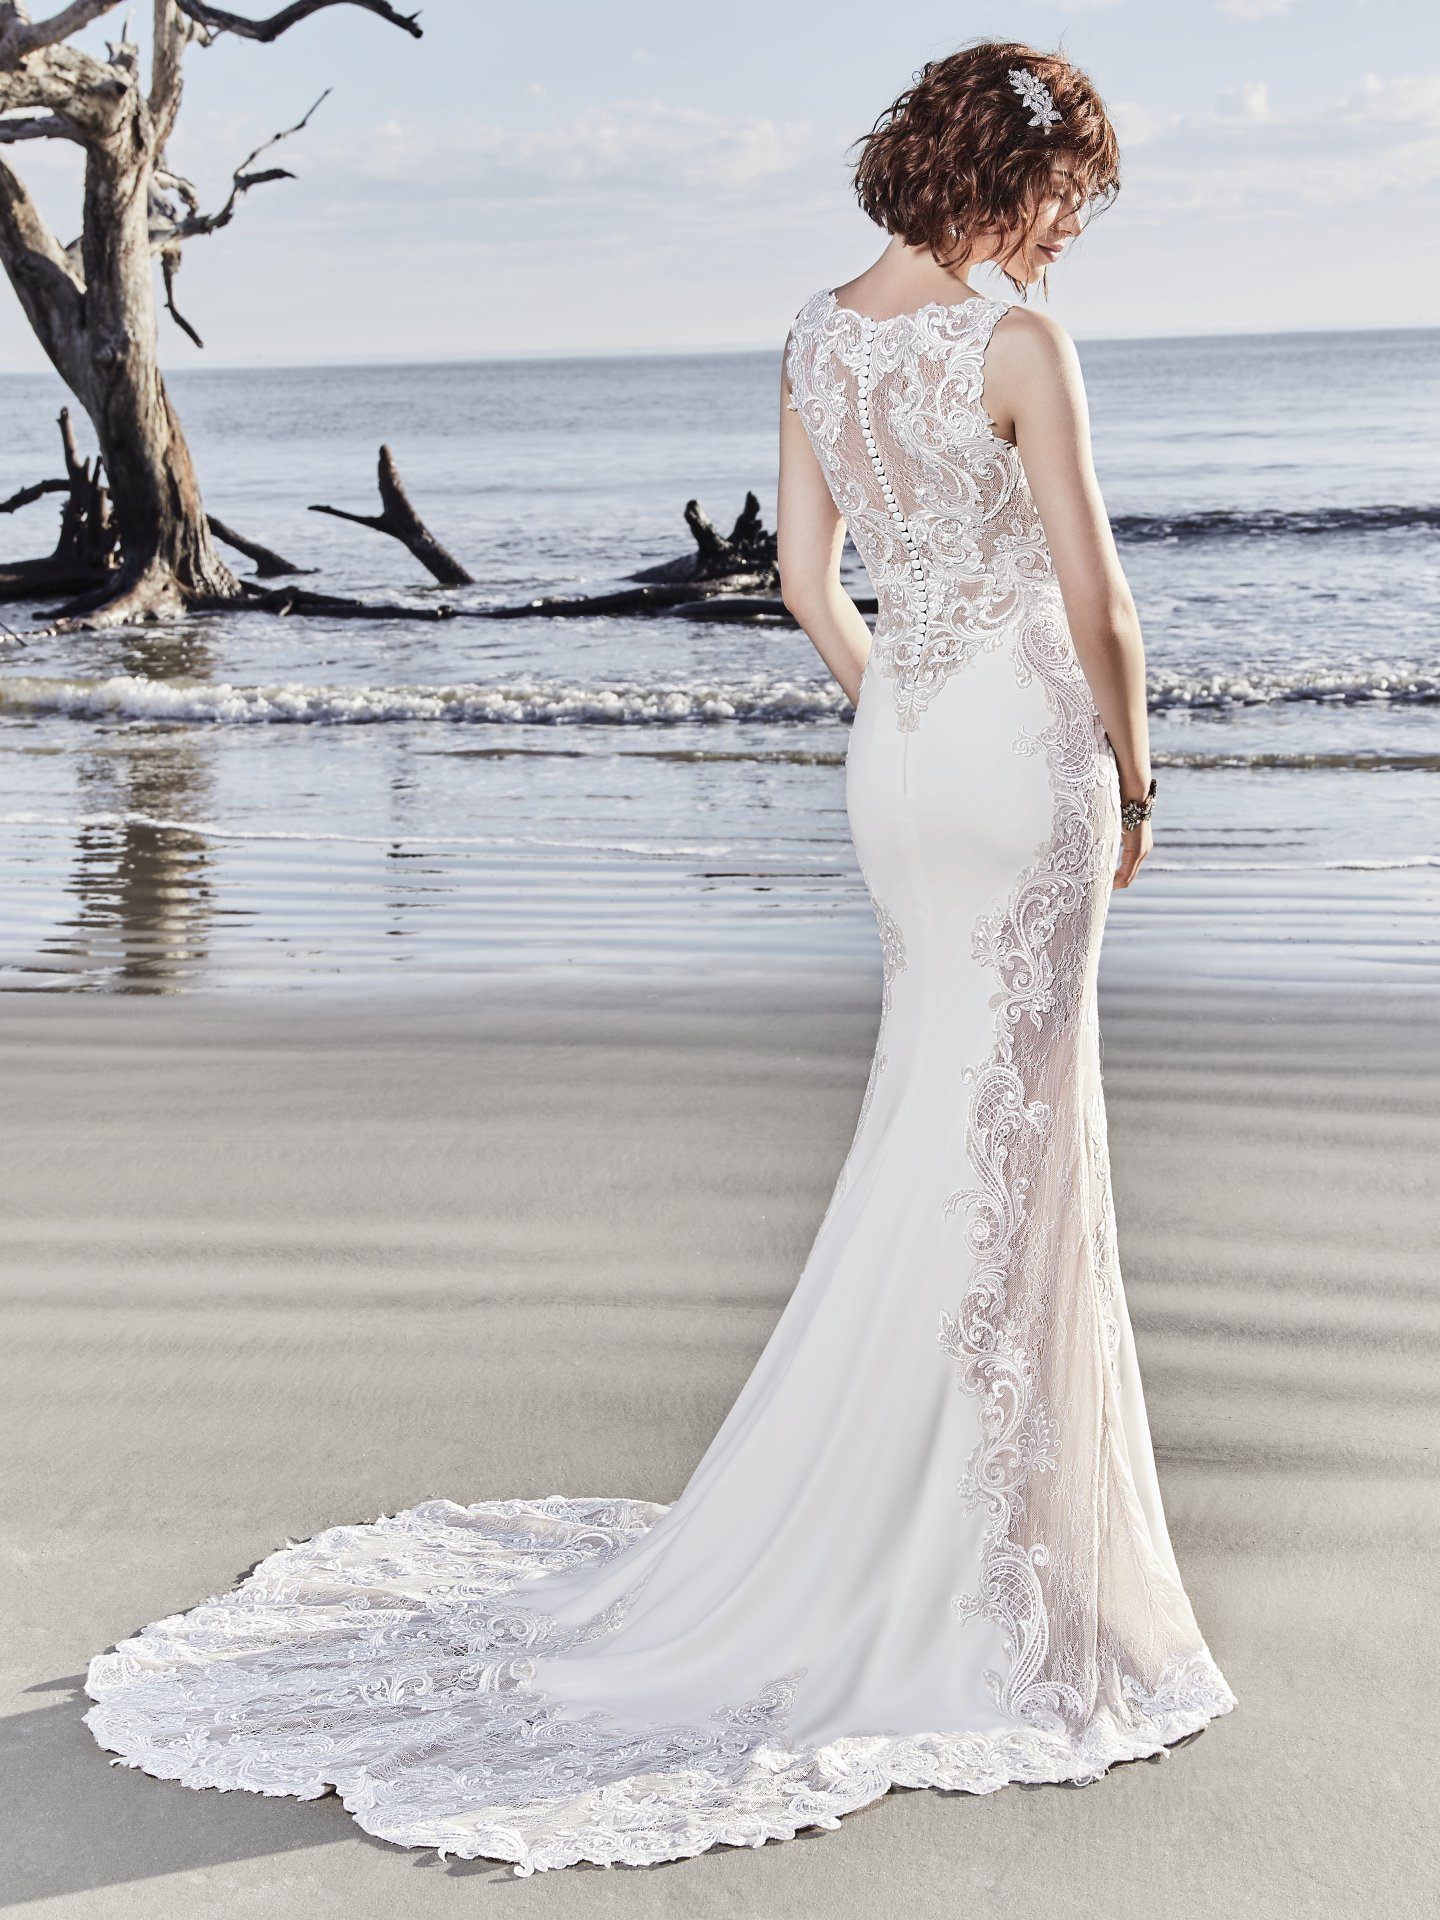 565ada4a07a2 New Arrival from Maggie Sottero! The Bradford Rose is stunning ...